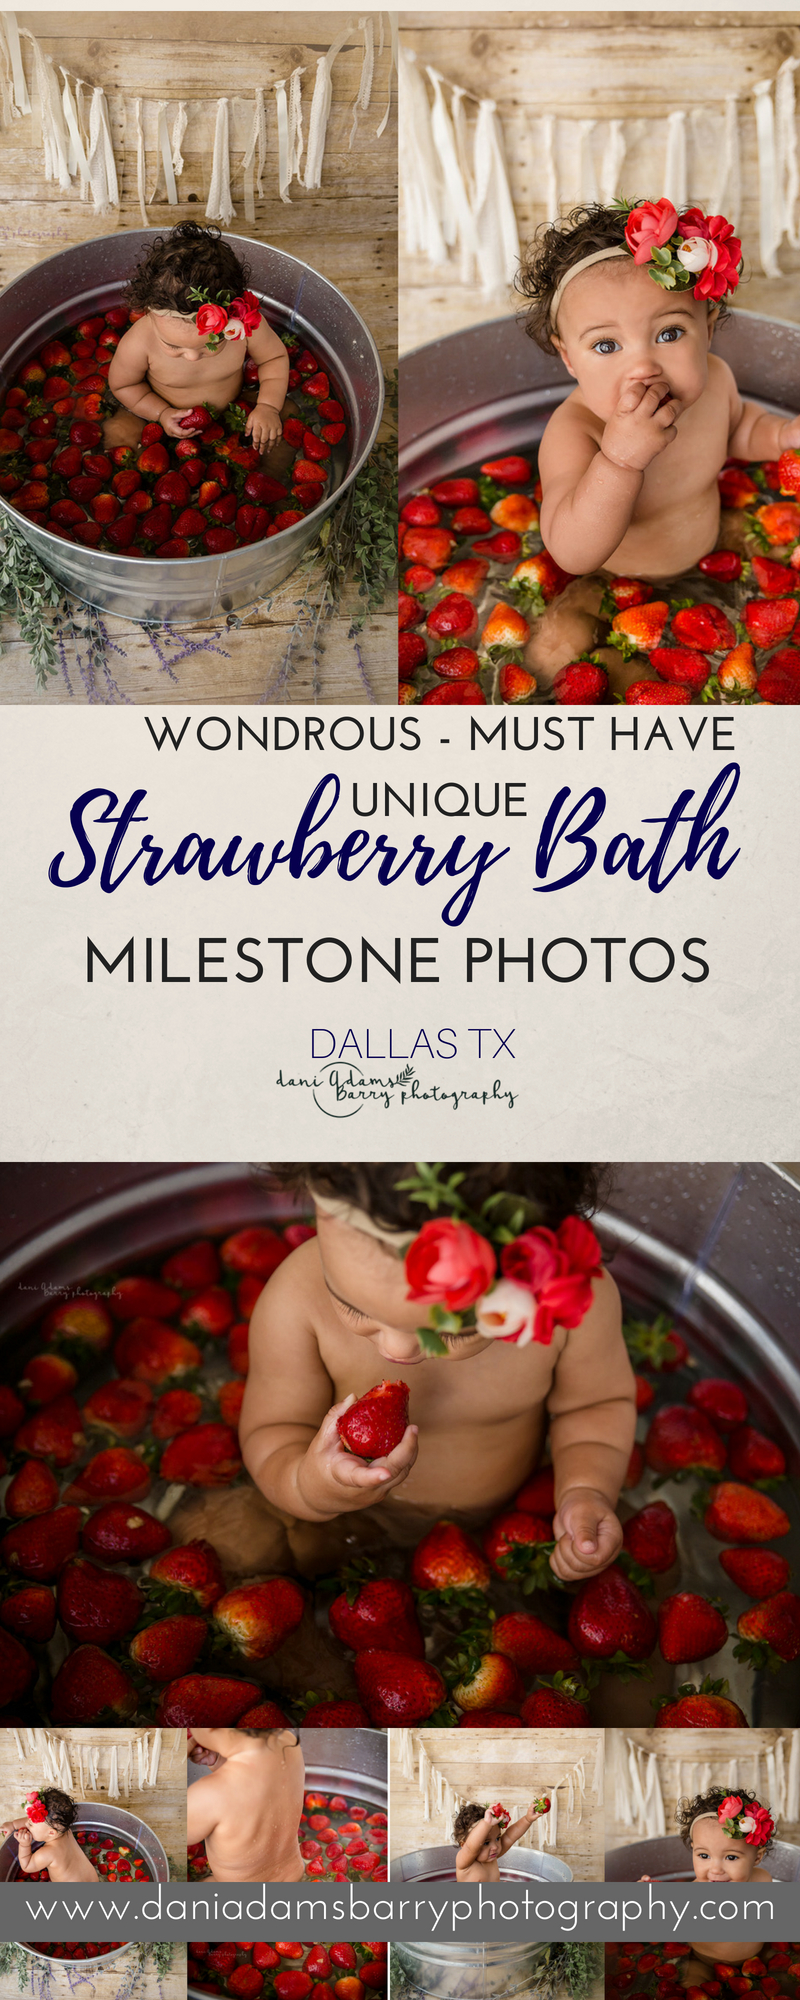 Baby Milestones Berry Bath Dallas Tx Milestone Photography